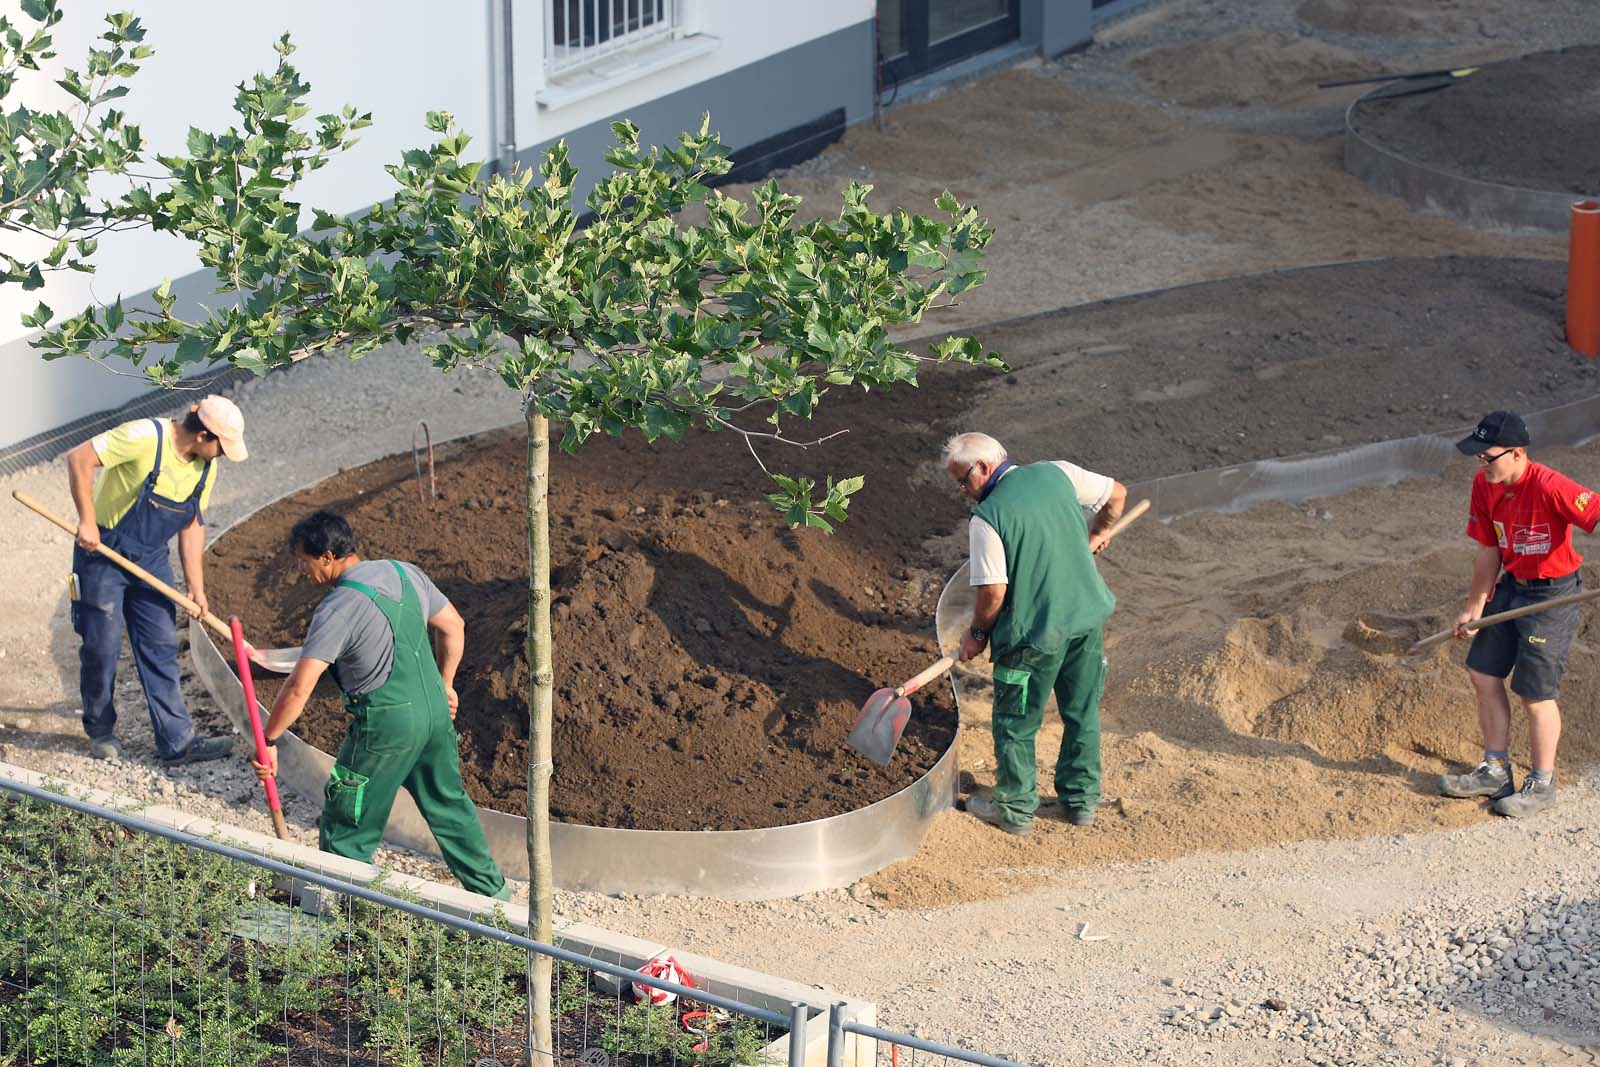 landscape workers